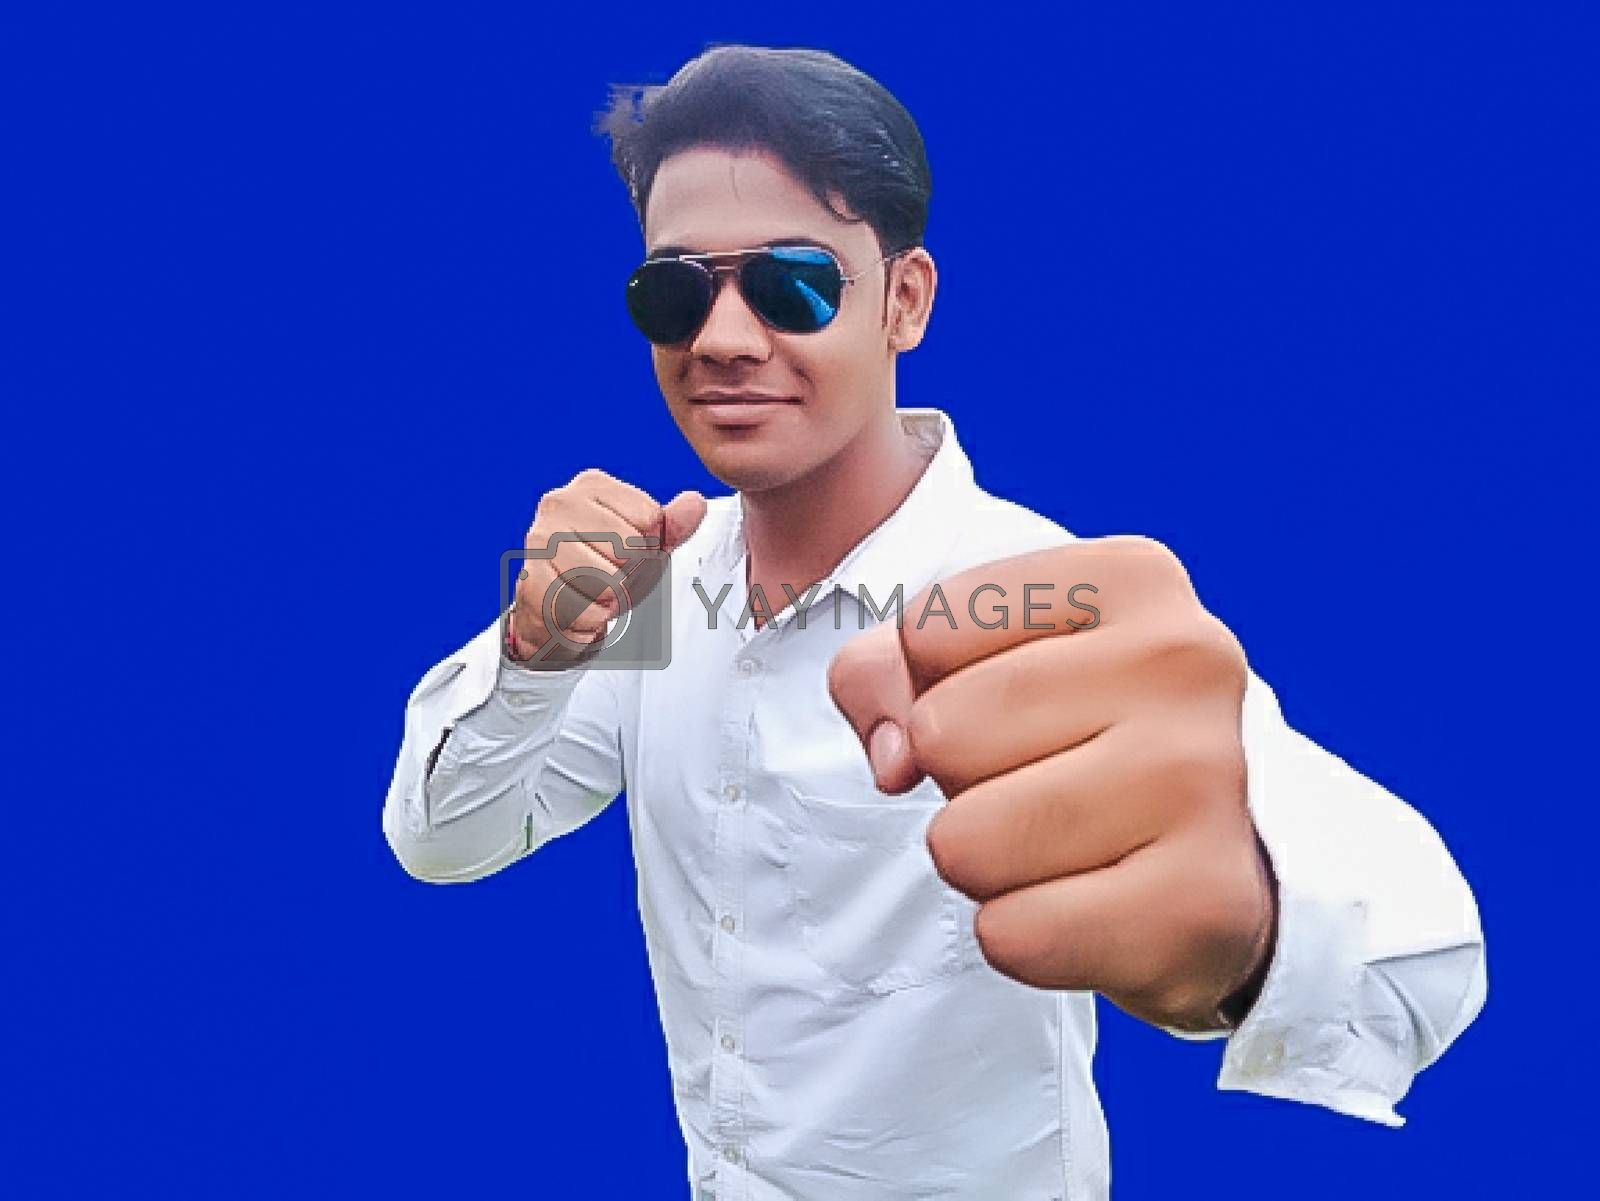 A picture of model in boxing move